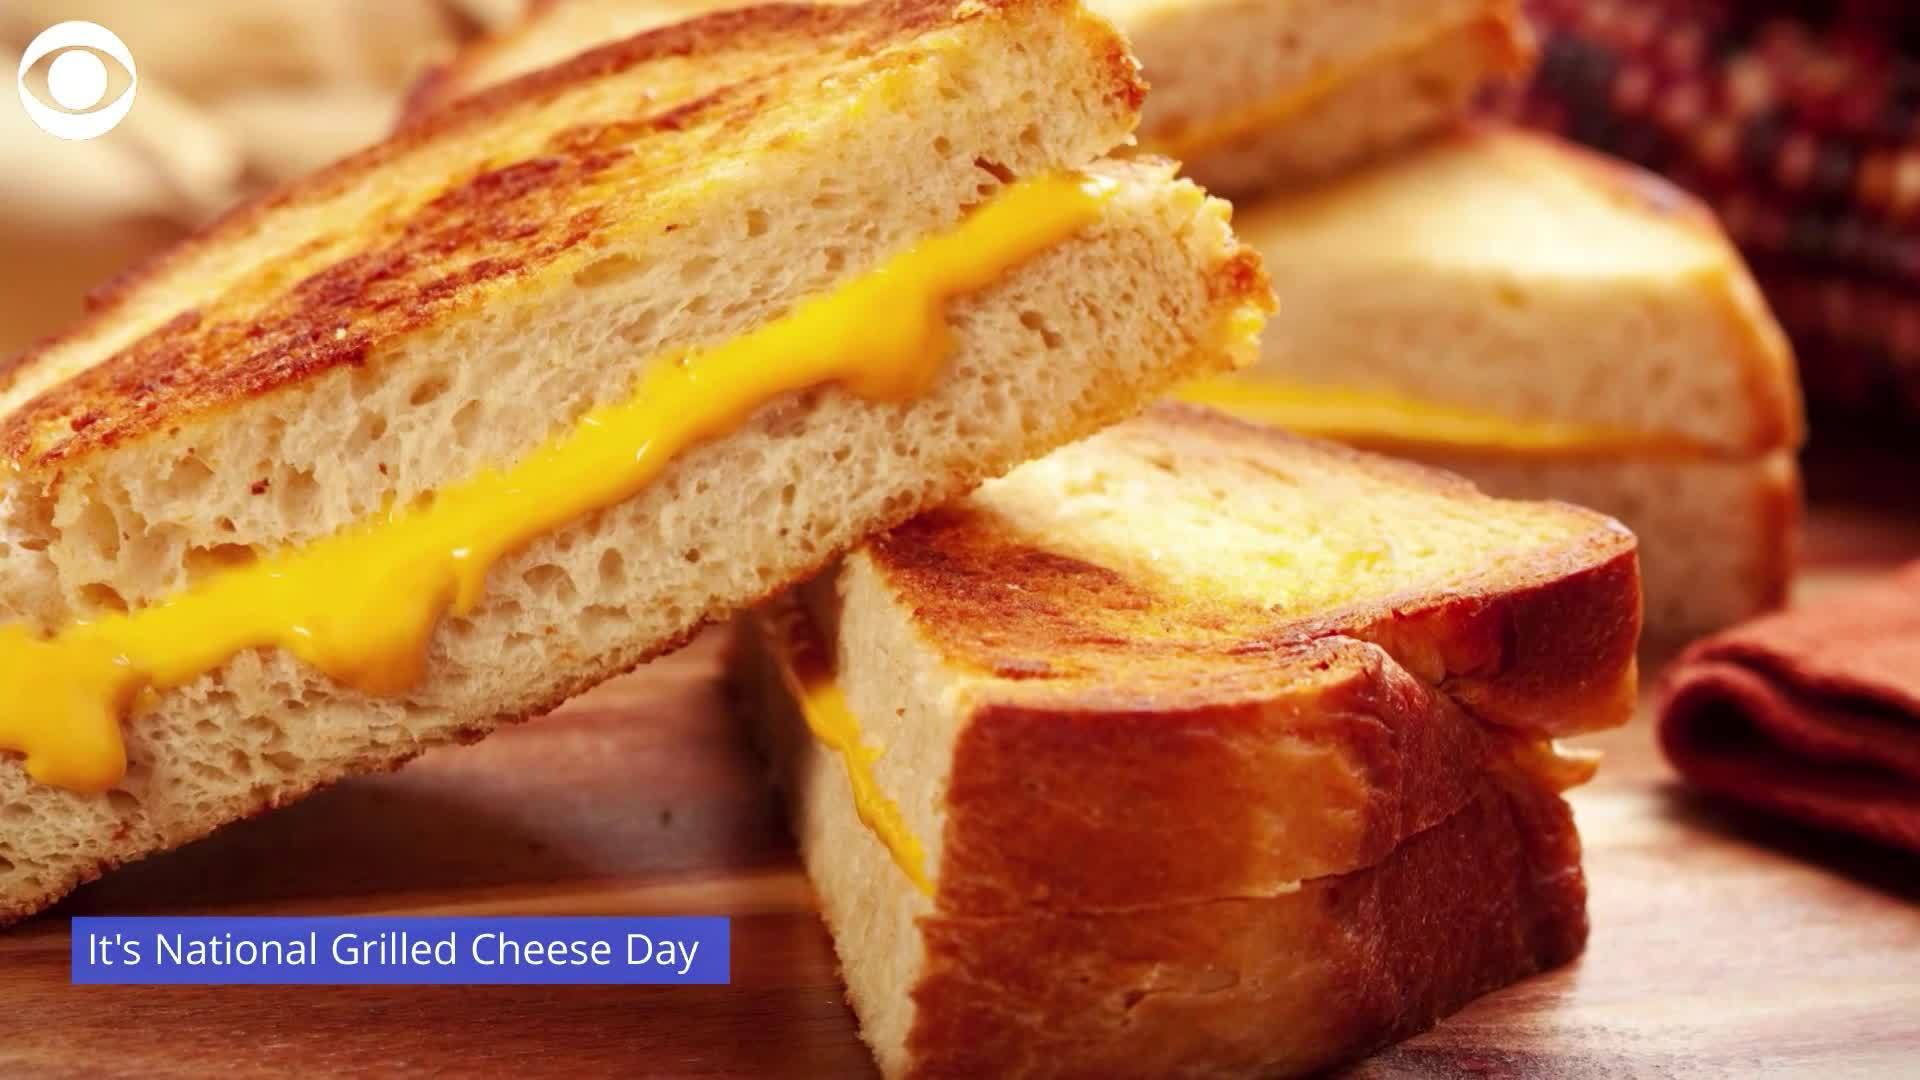 WEB EXTRA: National Grilled Cheese Day